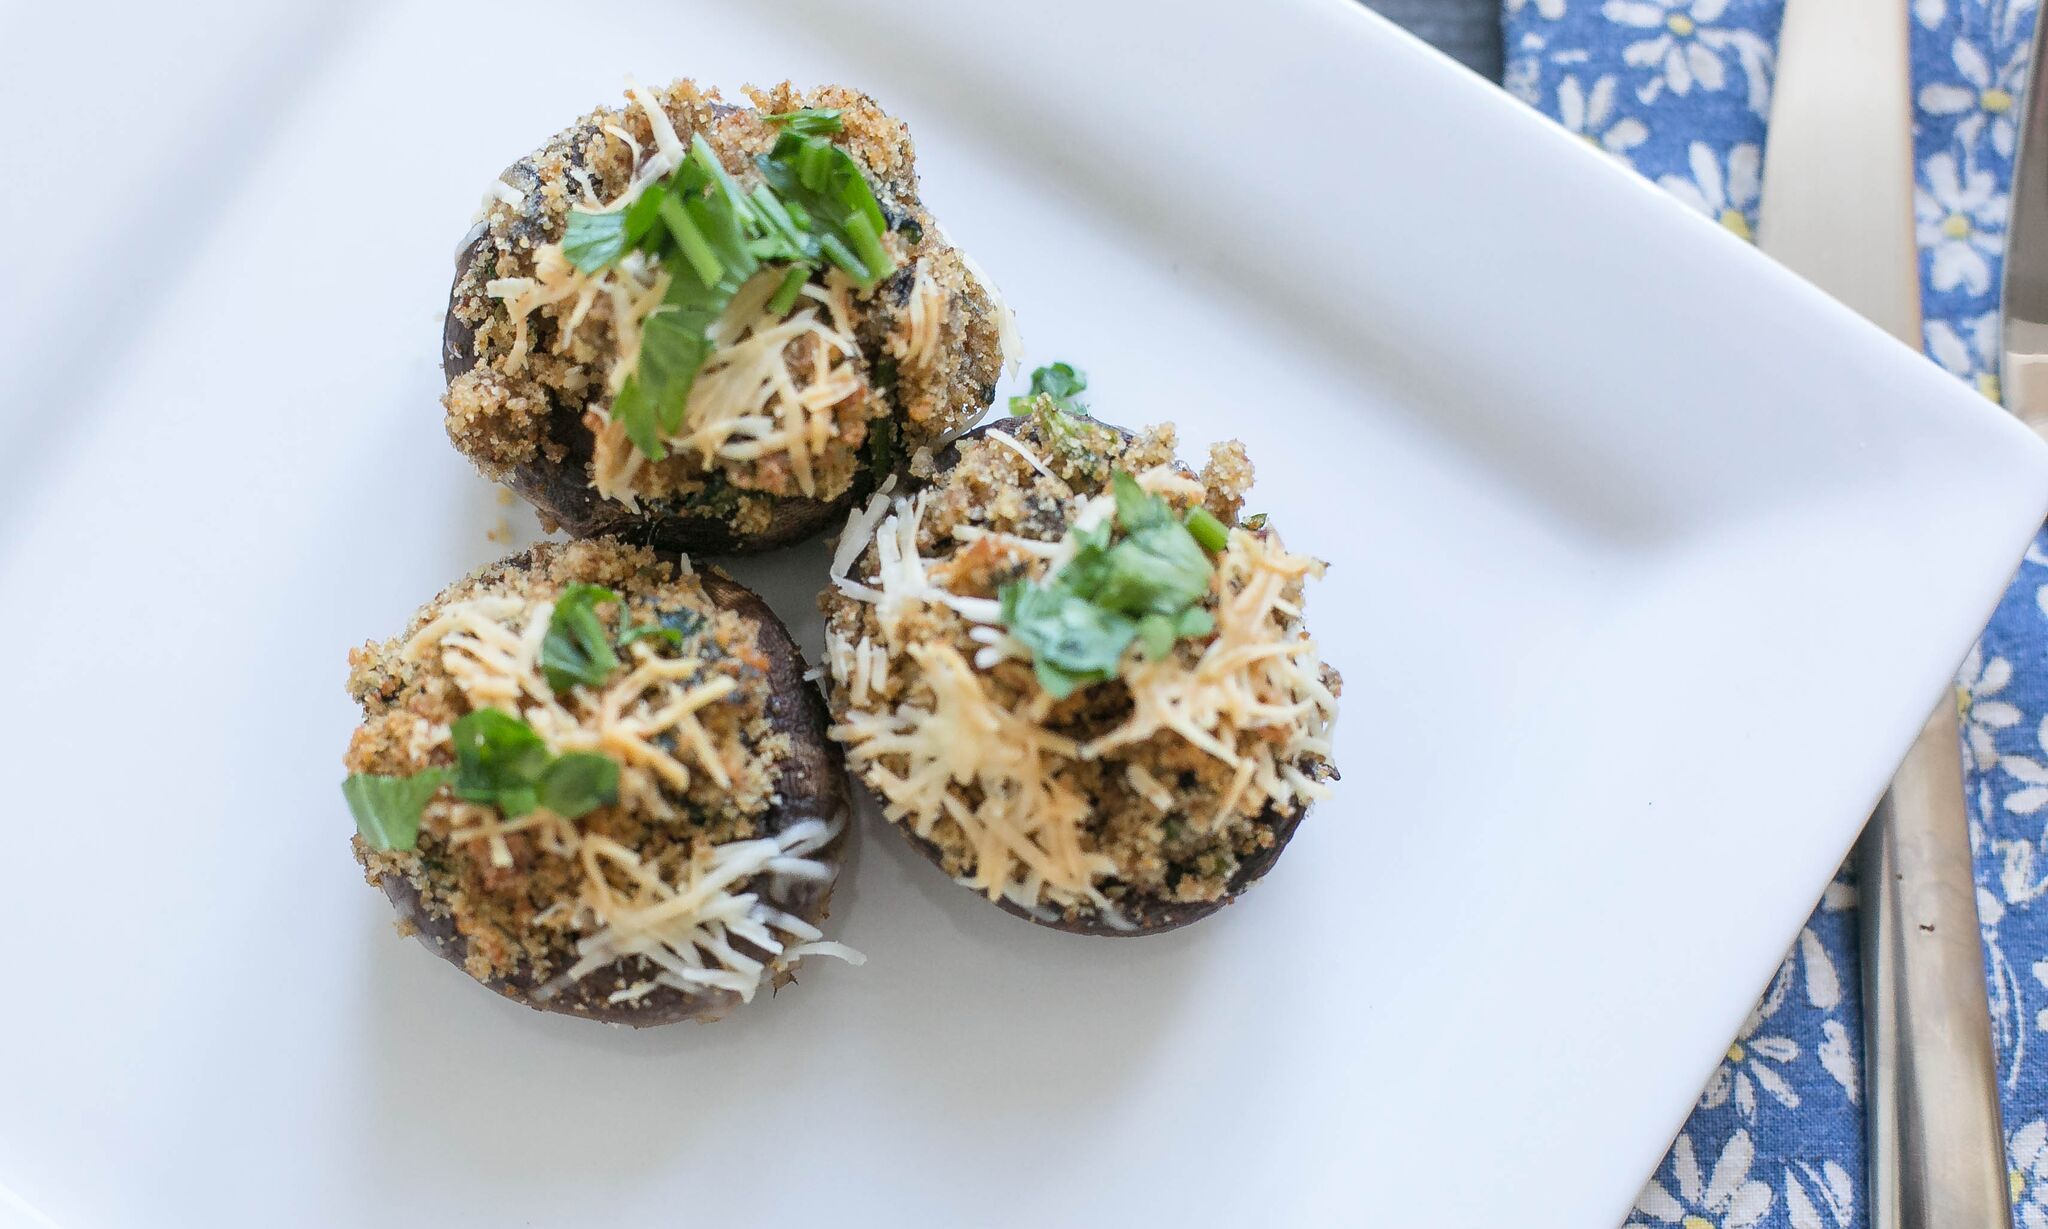 Serve these easy stuffed mushrooms garnished with parsley and fresh parmesan cheese.